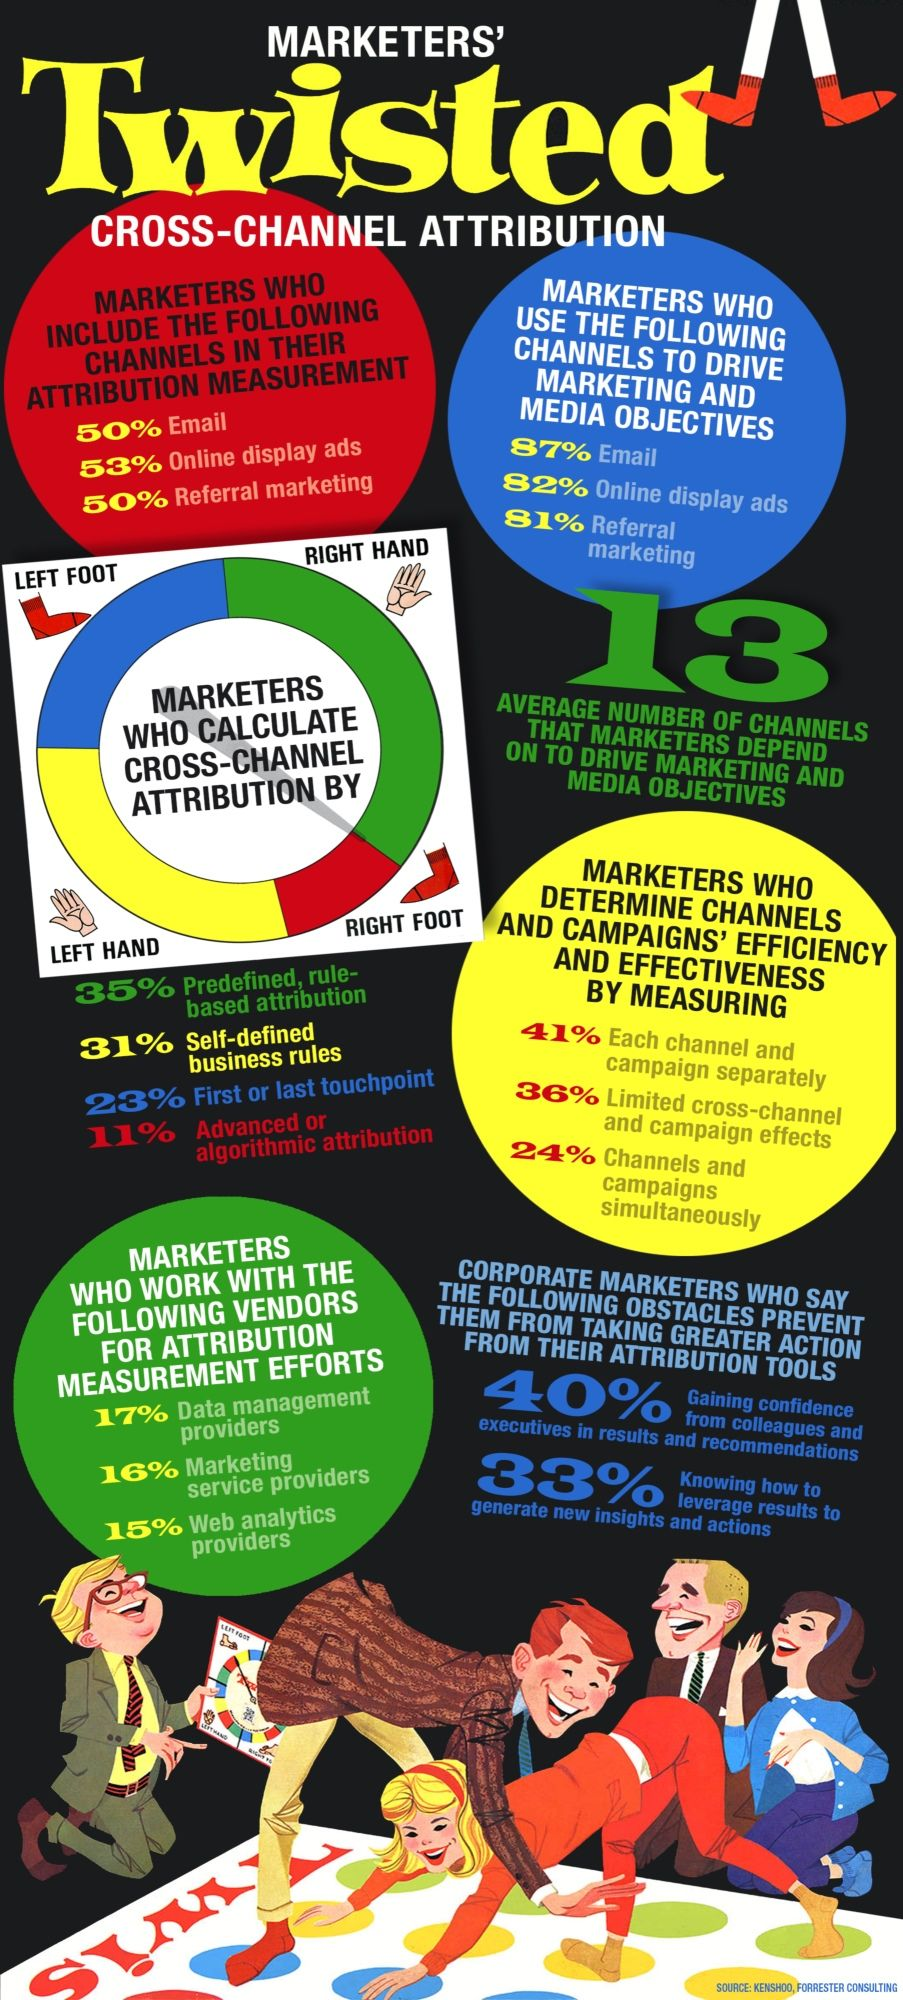 Marketers' Twisted Cross-Channel Attribution #Infographic